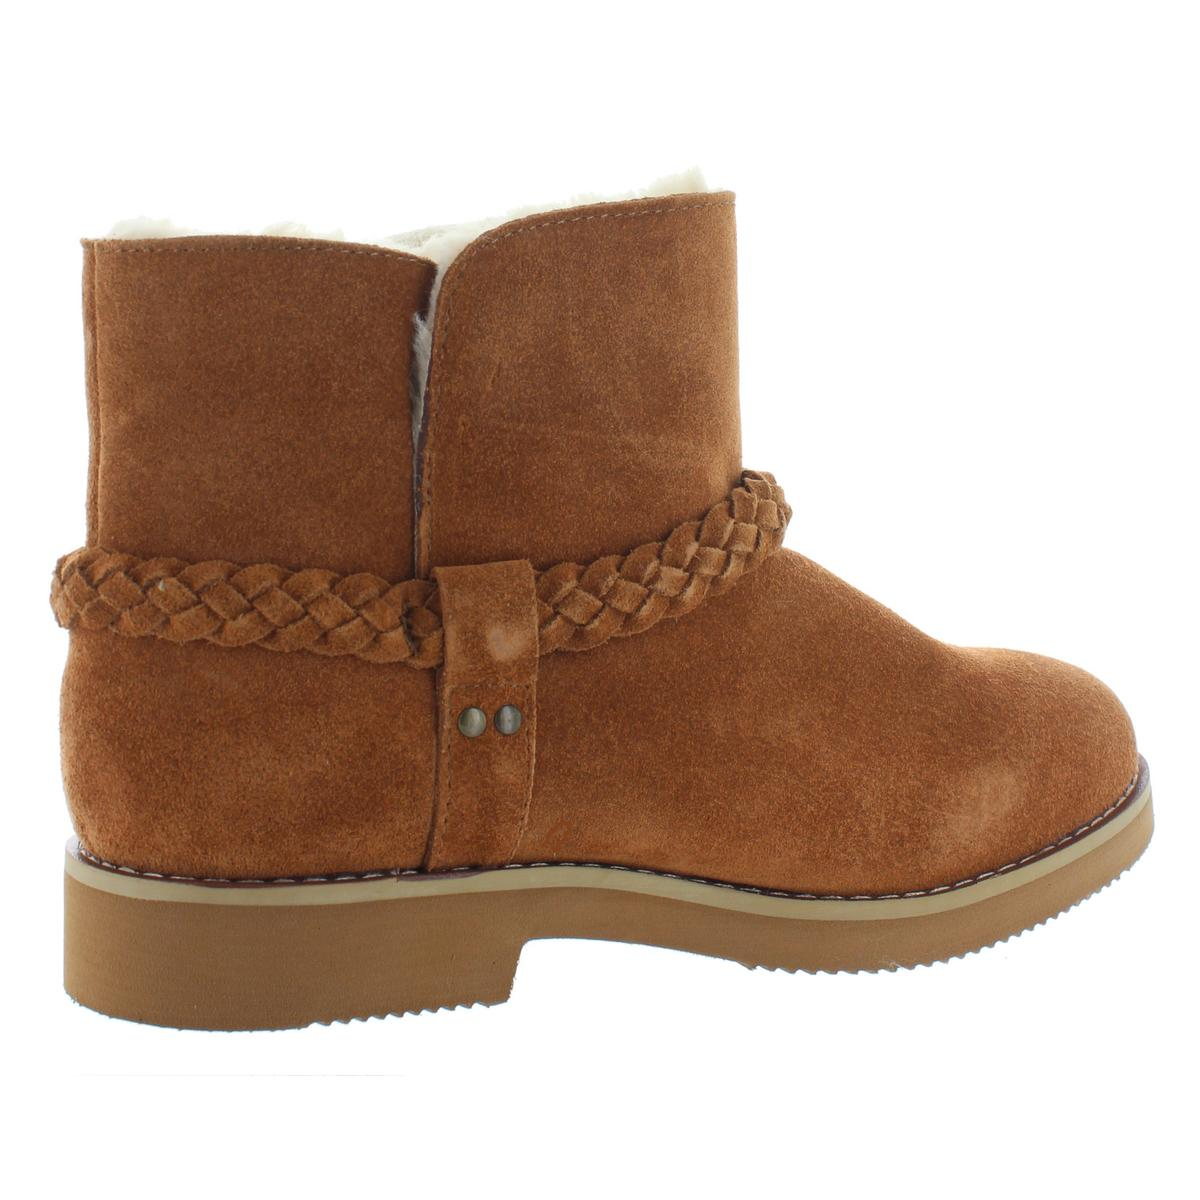 Womens Kaii Suede Faux Fur Lined Winter Booties Shoes BHFO 8281 Style /& Co